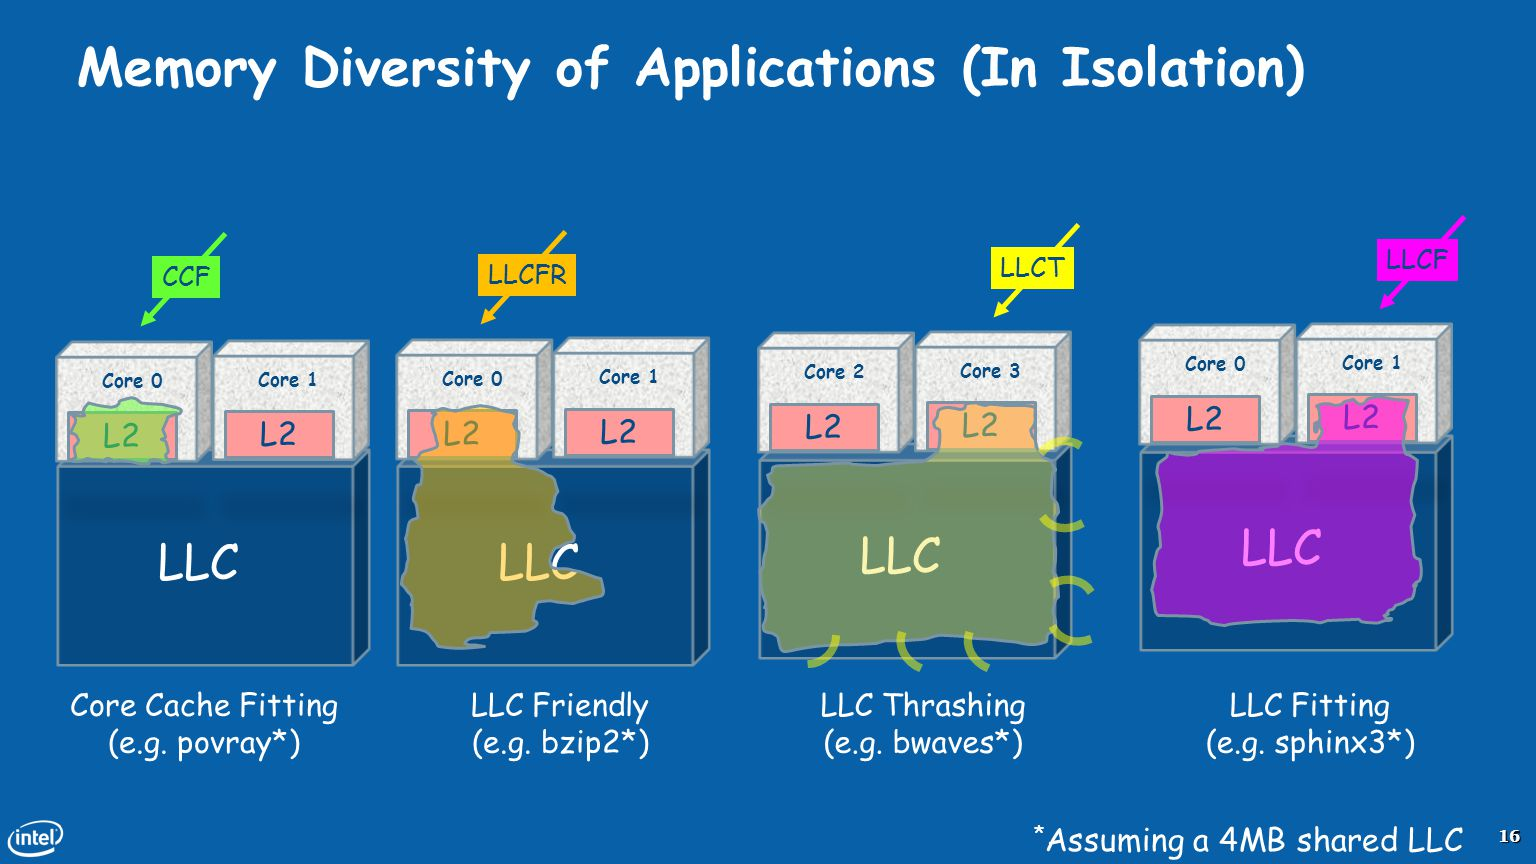 Memory Diversity of Applications (In Isolation)